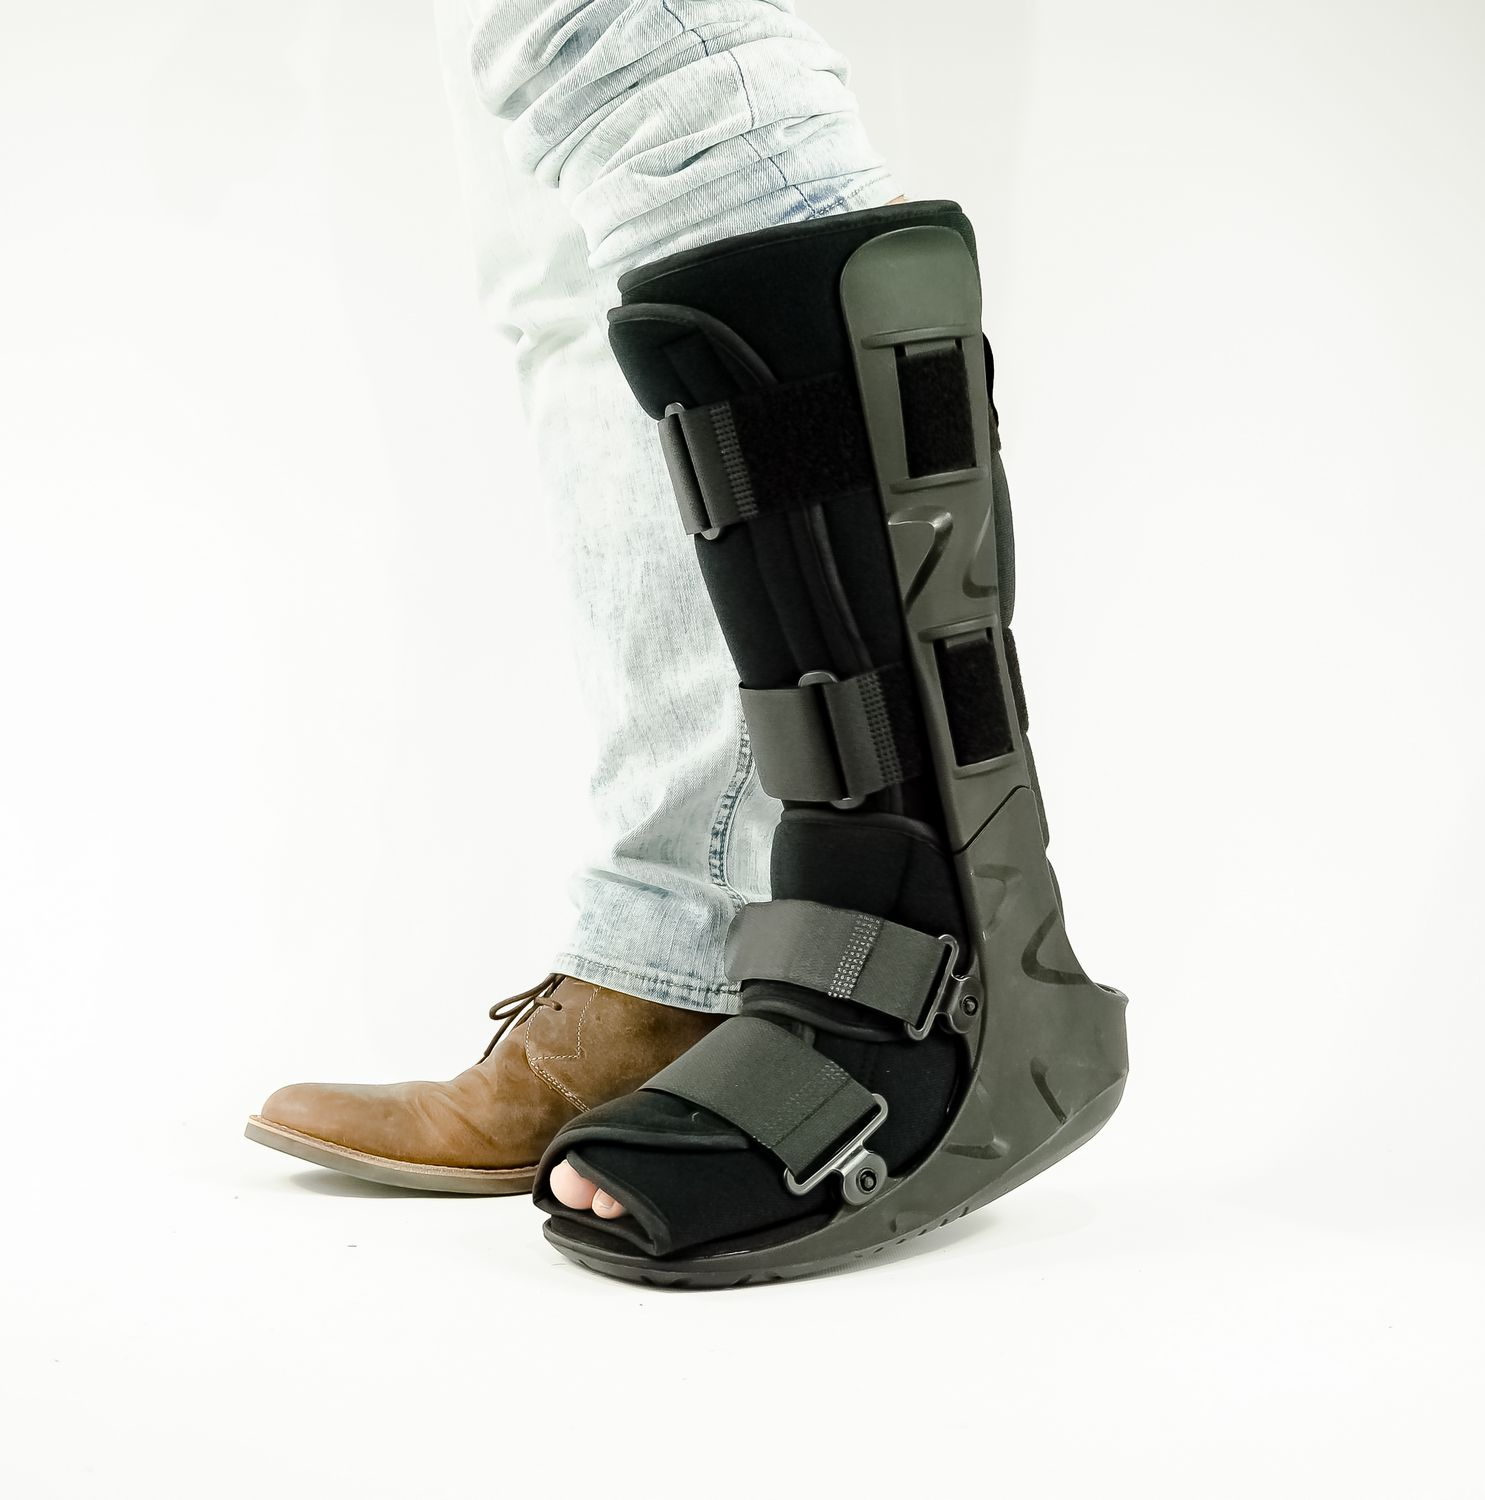 30b05c589f Foot Fracture Boot - High Top Fractured Ankle Boot - OrthoLife